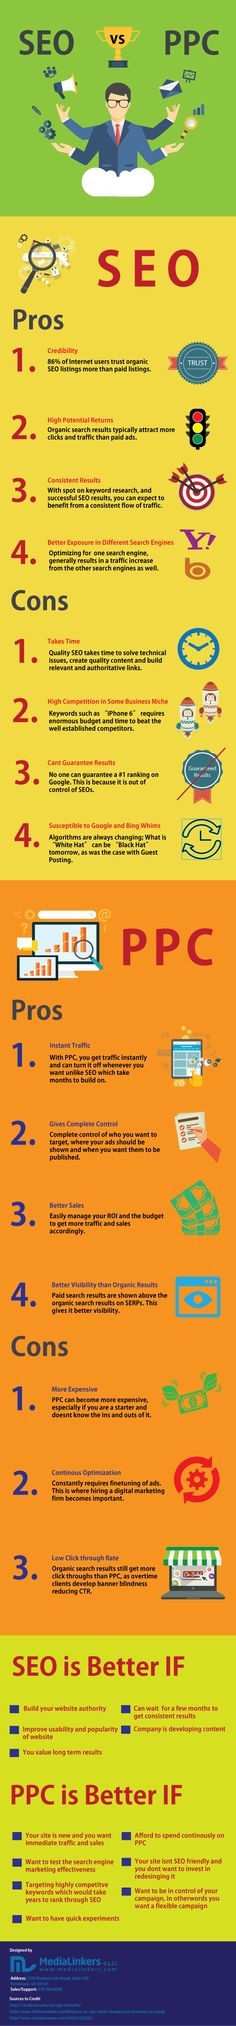 PPC Vs SEO by Medialinkers